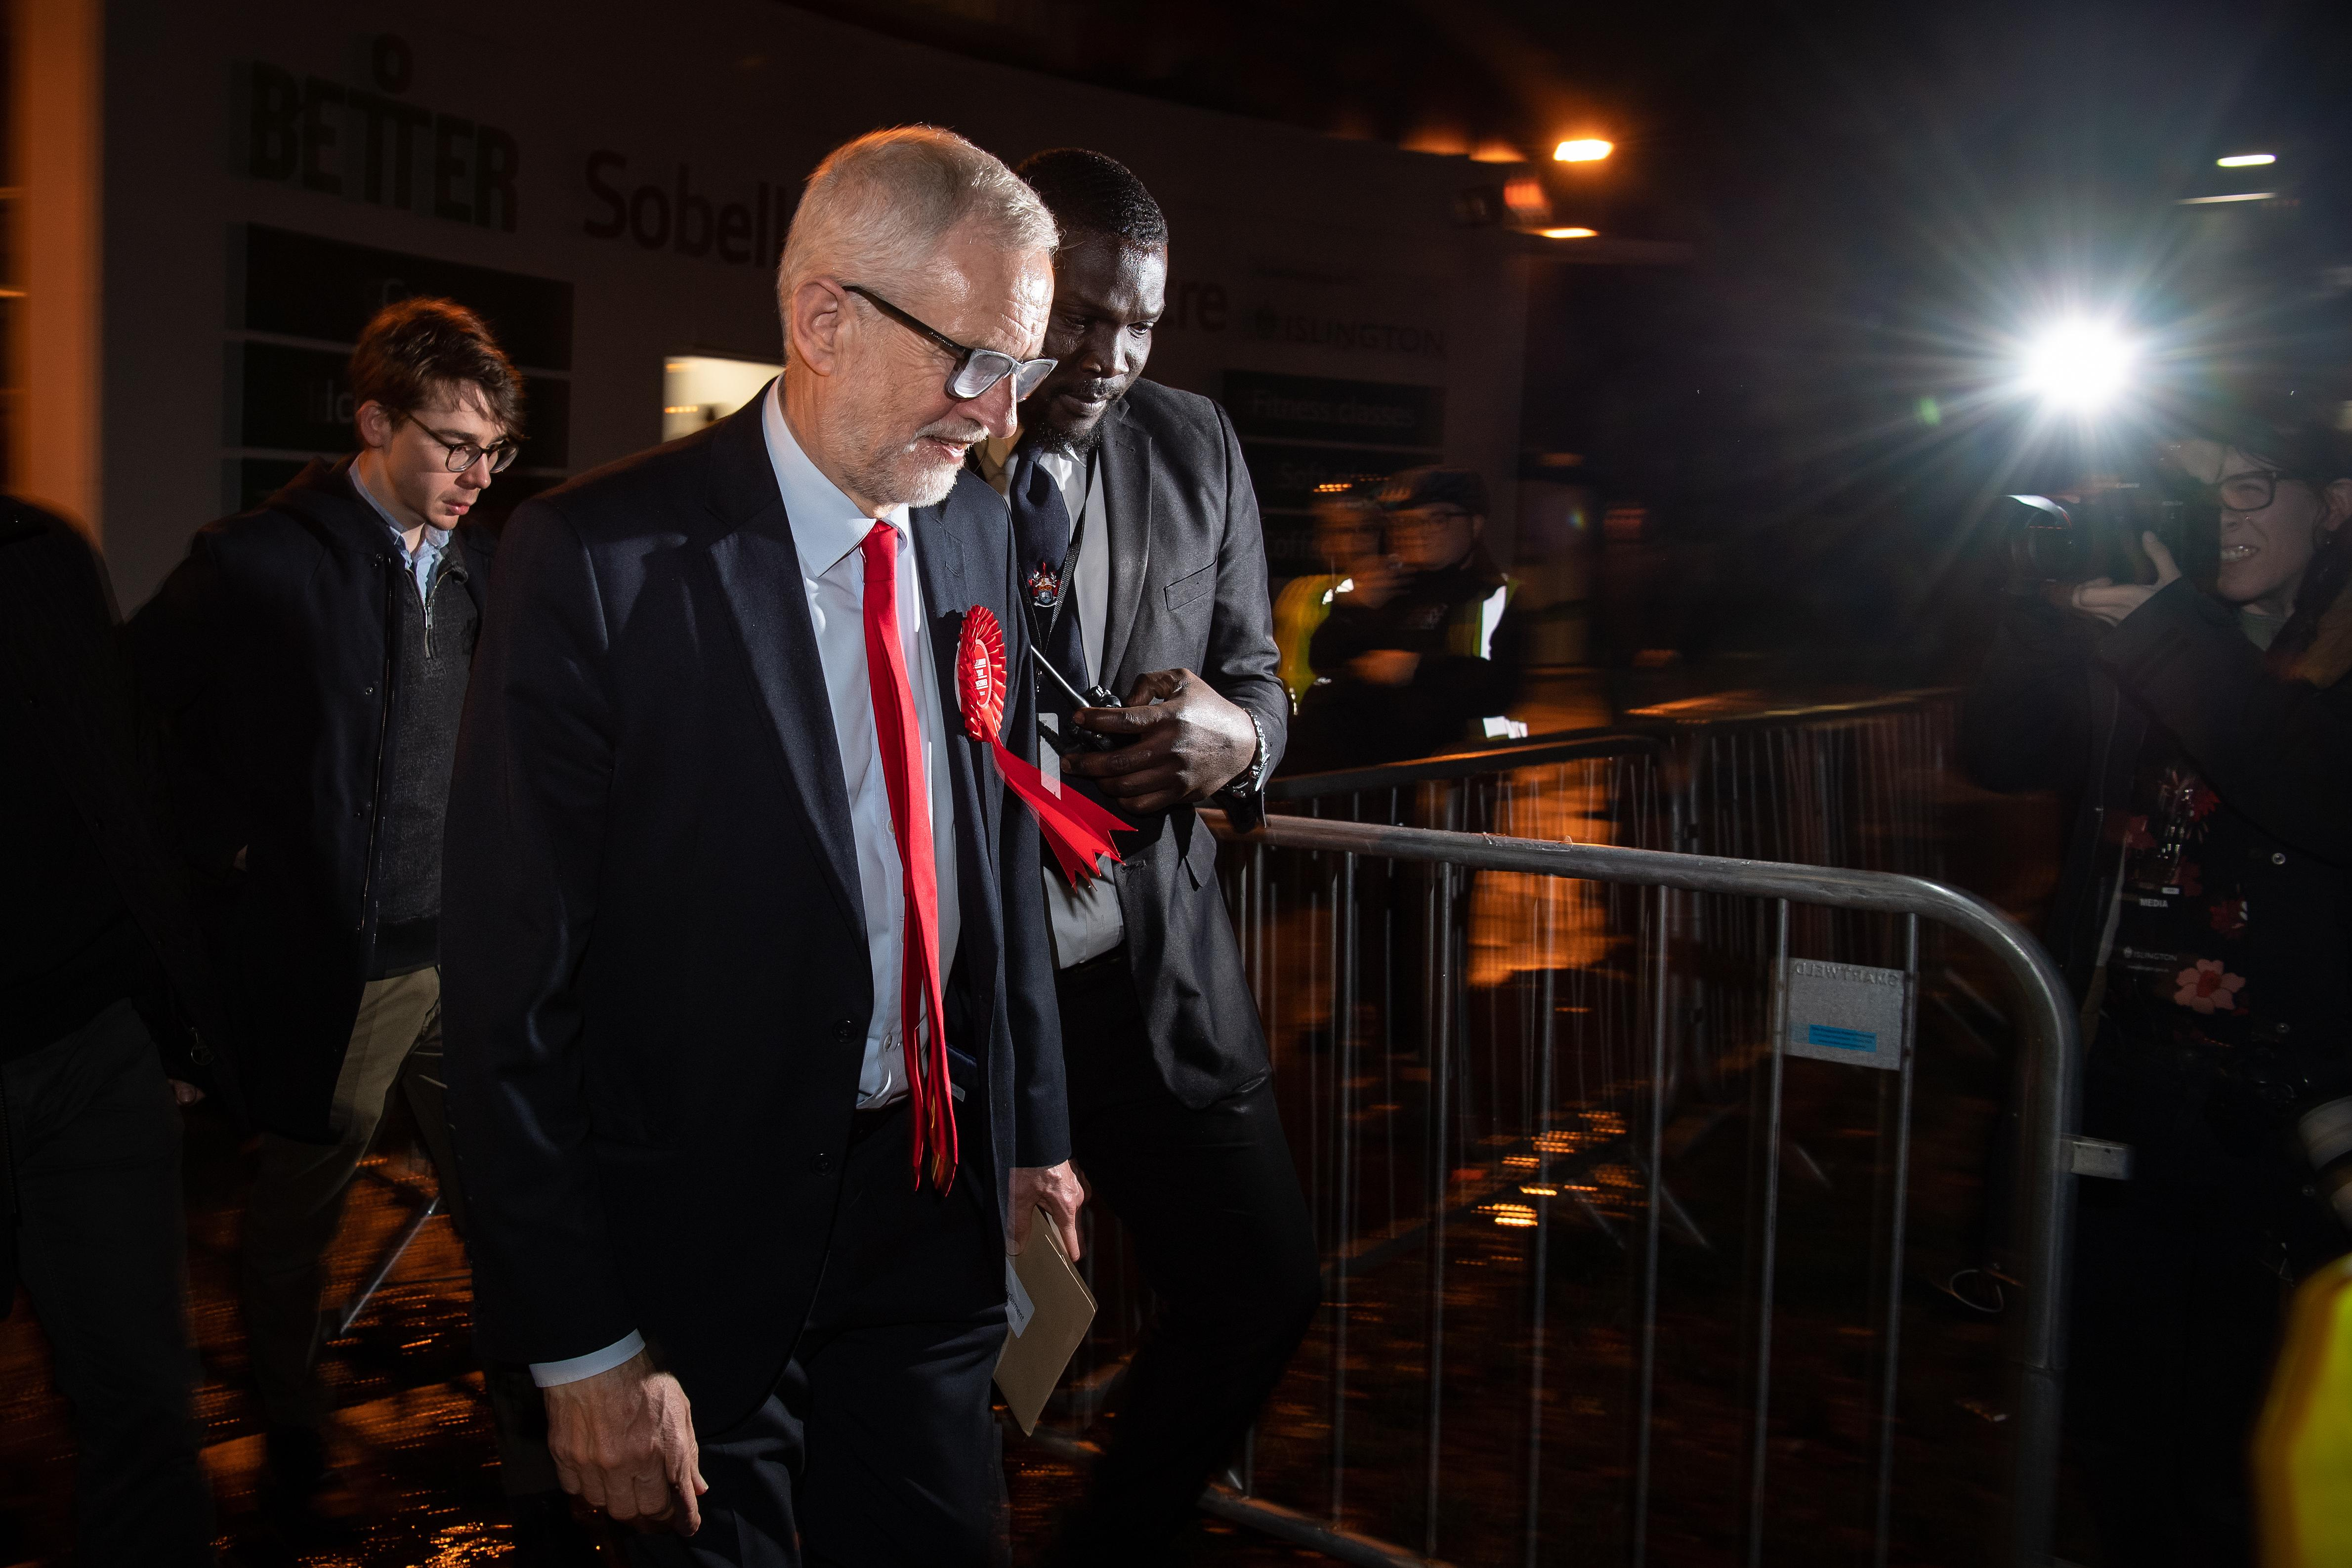 LONDON, ENGLAND - DECEMBER 13: Jeremy Corbyn, leader of the Labour Party, leaves the vote count in his Islington North constituency on December 13, 2019 in London, England. Corbyn, who has held the Islington North seat since 1983, retained his seat but is expected to step down as leader following his party's decisive defeat by the Conservatives and Prime Minister Boris Johnson. The Prime Minister called the first UK winter election for nearly a century in an attempt to gain a working majority to break the parliamentary deadlock over Brexit. The election results from across the country are being counted overnight and an overall result is expected in the early hours of Friday morning. (Photo by Leon Neal/Getty Images)